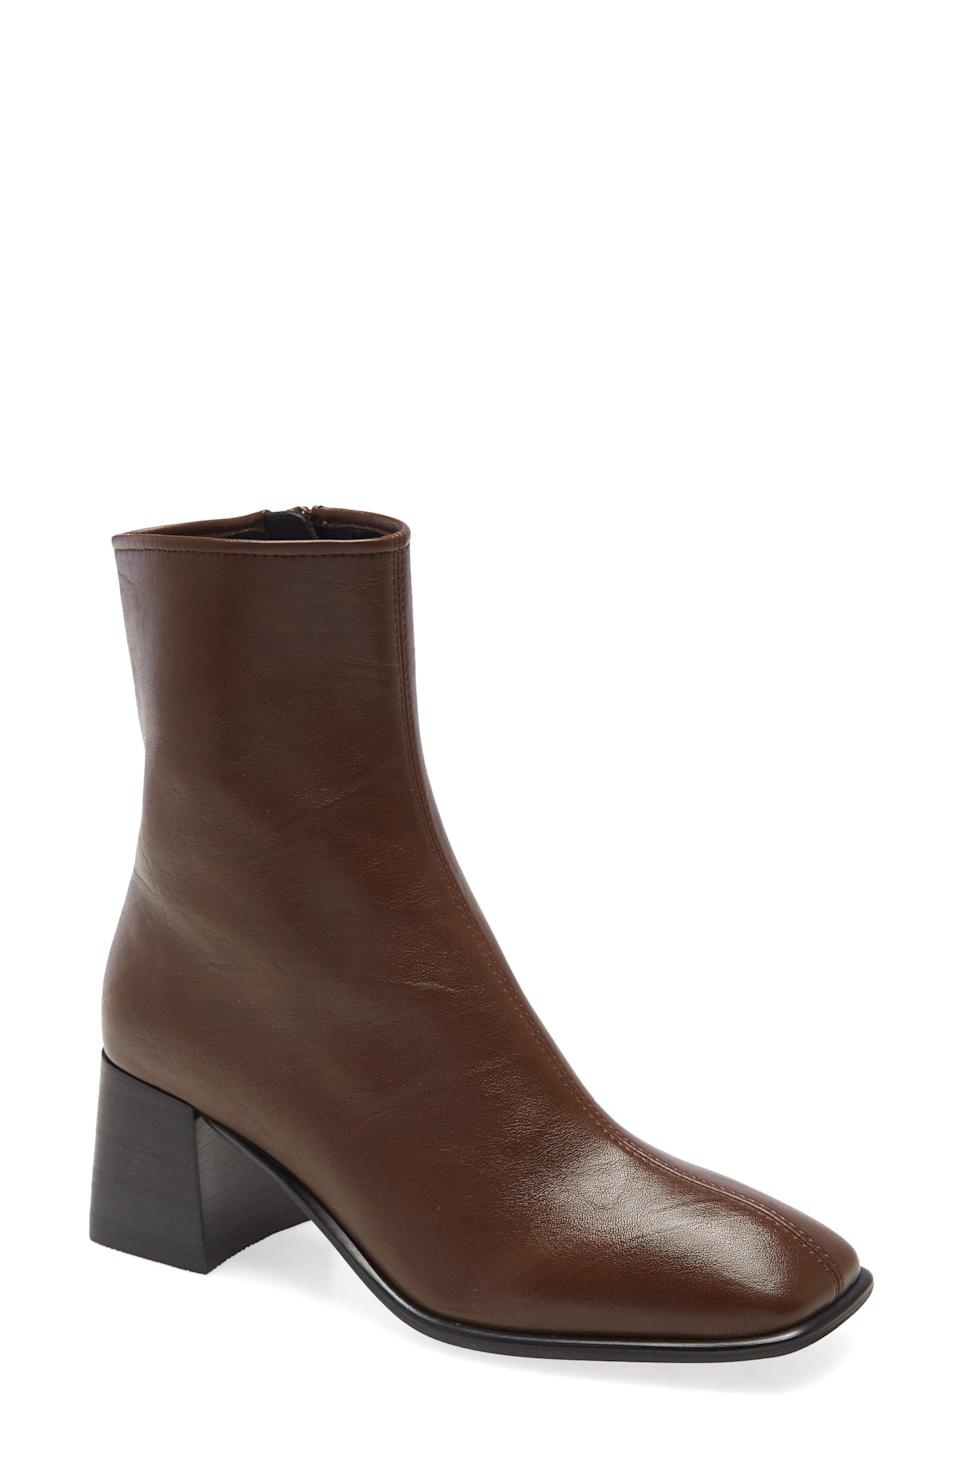 """<p><strong>Jeffrey Campbell</strong></p><p>nordstrom.com</p><p><a href=""""https://go.redirectingat.com?id=74968X1596630&url=https%3A%2F%2Fwww.nordstrom.com%2Fs%2Fjeffrey-campbell-troye-square-toe-bootie-women%2F5597826&sref=https%3A%2F%2Fwww.elle.com%2Ffashion%2Fshopping%2Fg33444637%2Fnordstrom-anniversary-sale-2020%2F"""" rel=""""nofollow noopener"""" target=""""_blank"""" data-ylk=""""slk:Shop Now"""" class=""""link rapid-noclick-resp"""">Shop Now</a></p><p><del>$150</del></p><p><strong>$99.90</strong></p>"""